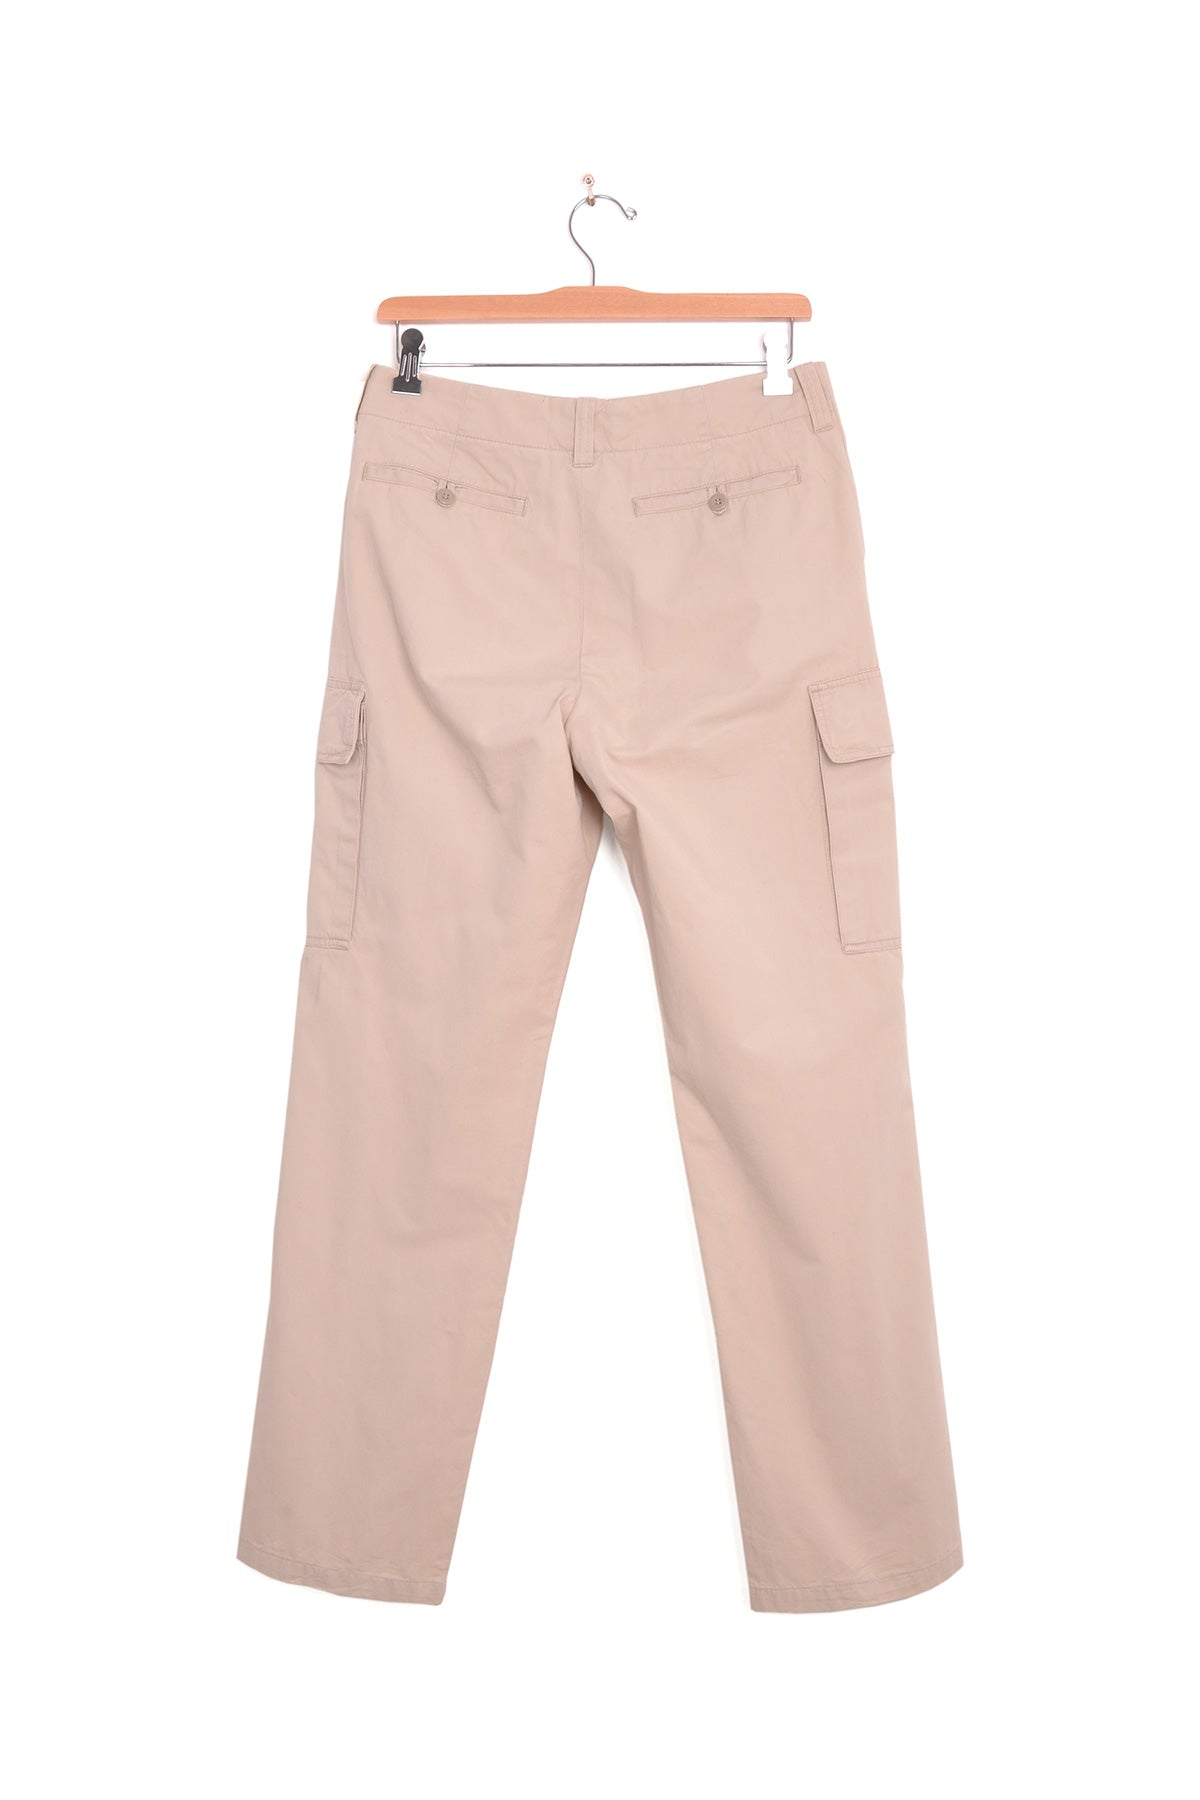 1998 A/W BRUSHED COTTON TWILL CARGO TROUSERS